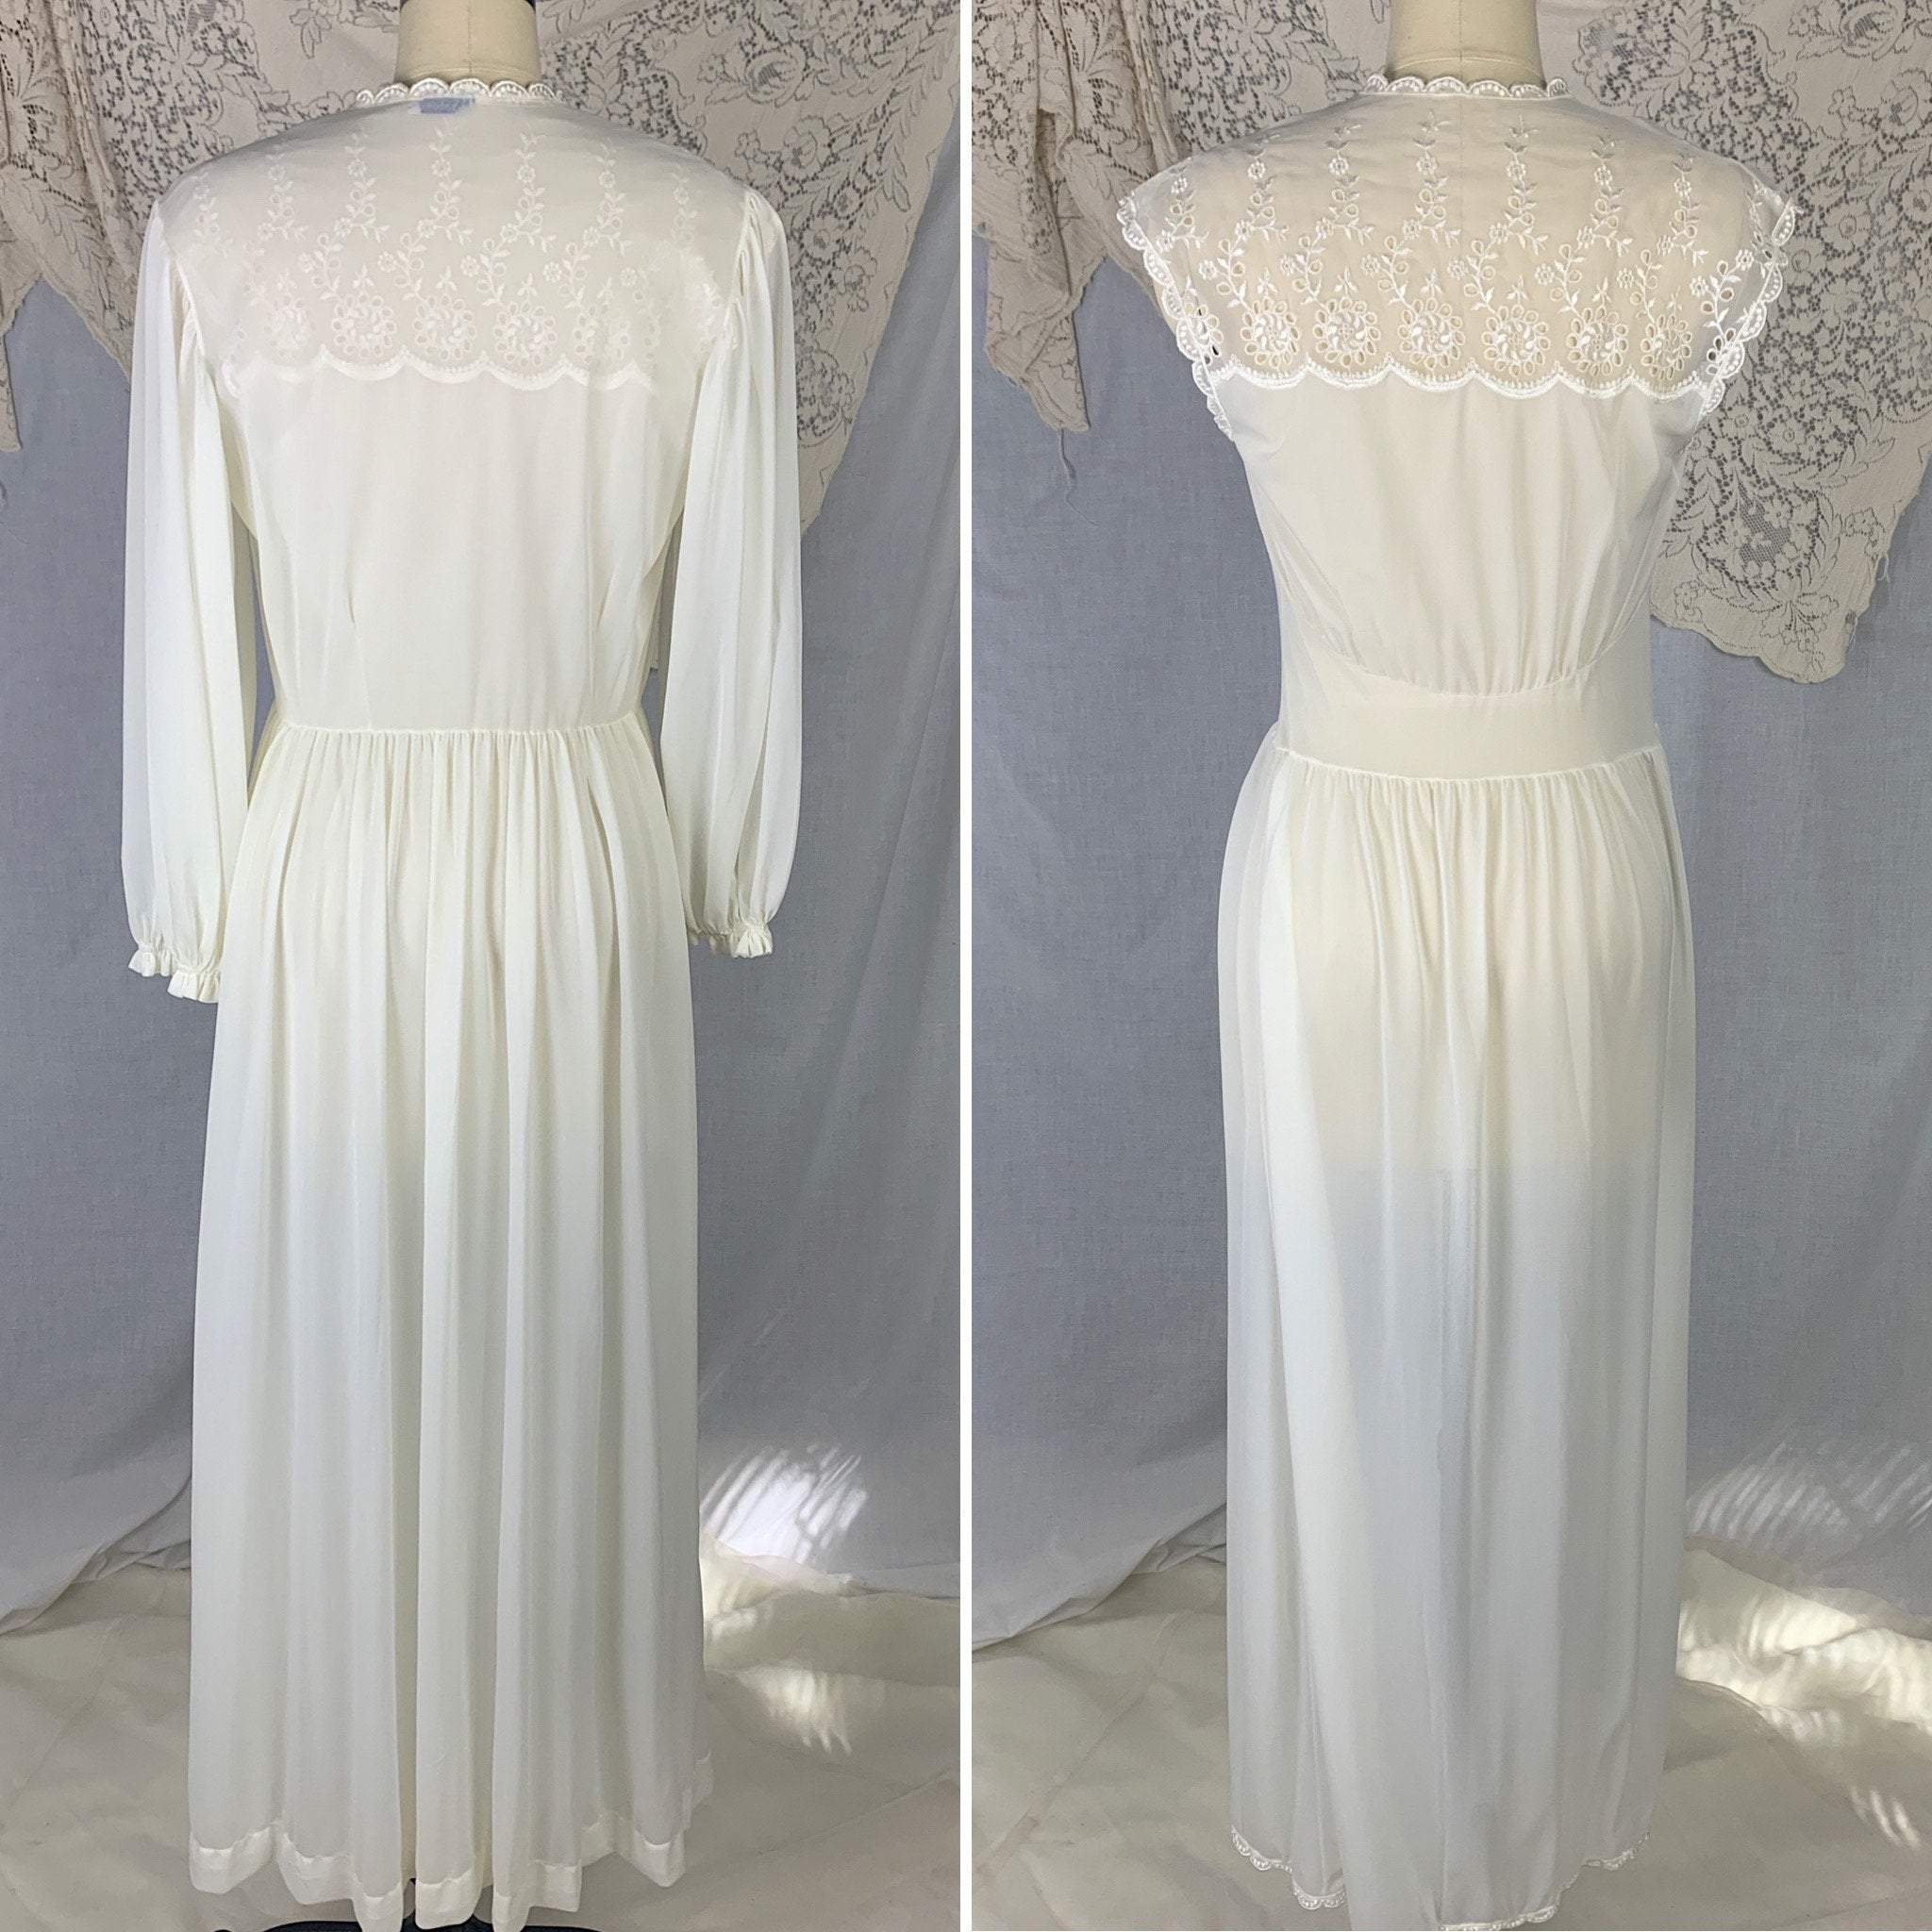 Vintage 1950's Peignoir Set | White Nylon with Floral Eyelet Embroidered Chiffon | Size S | Radcliffe - Daggers & Dames